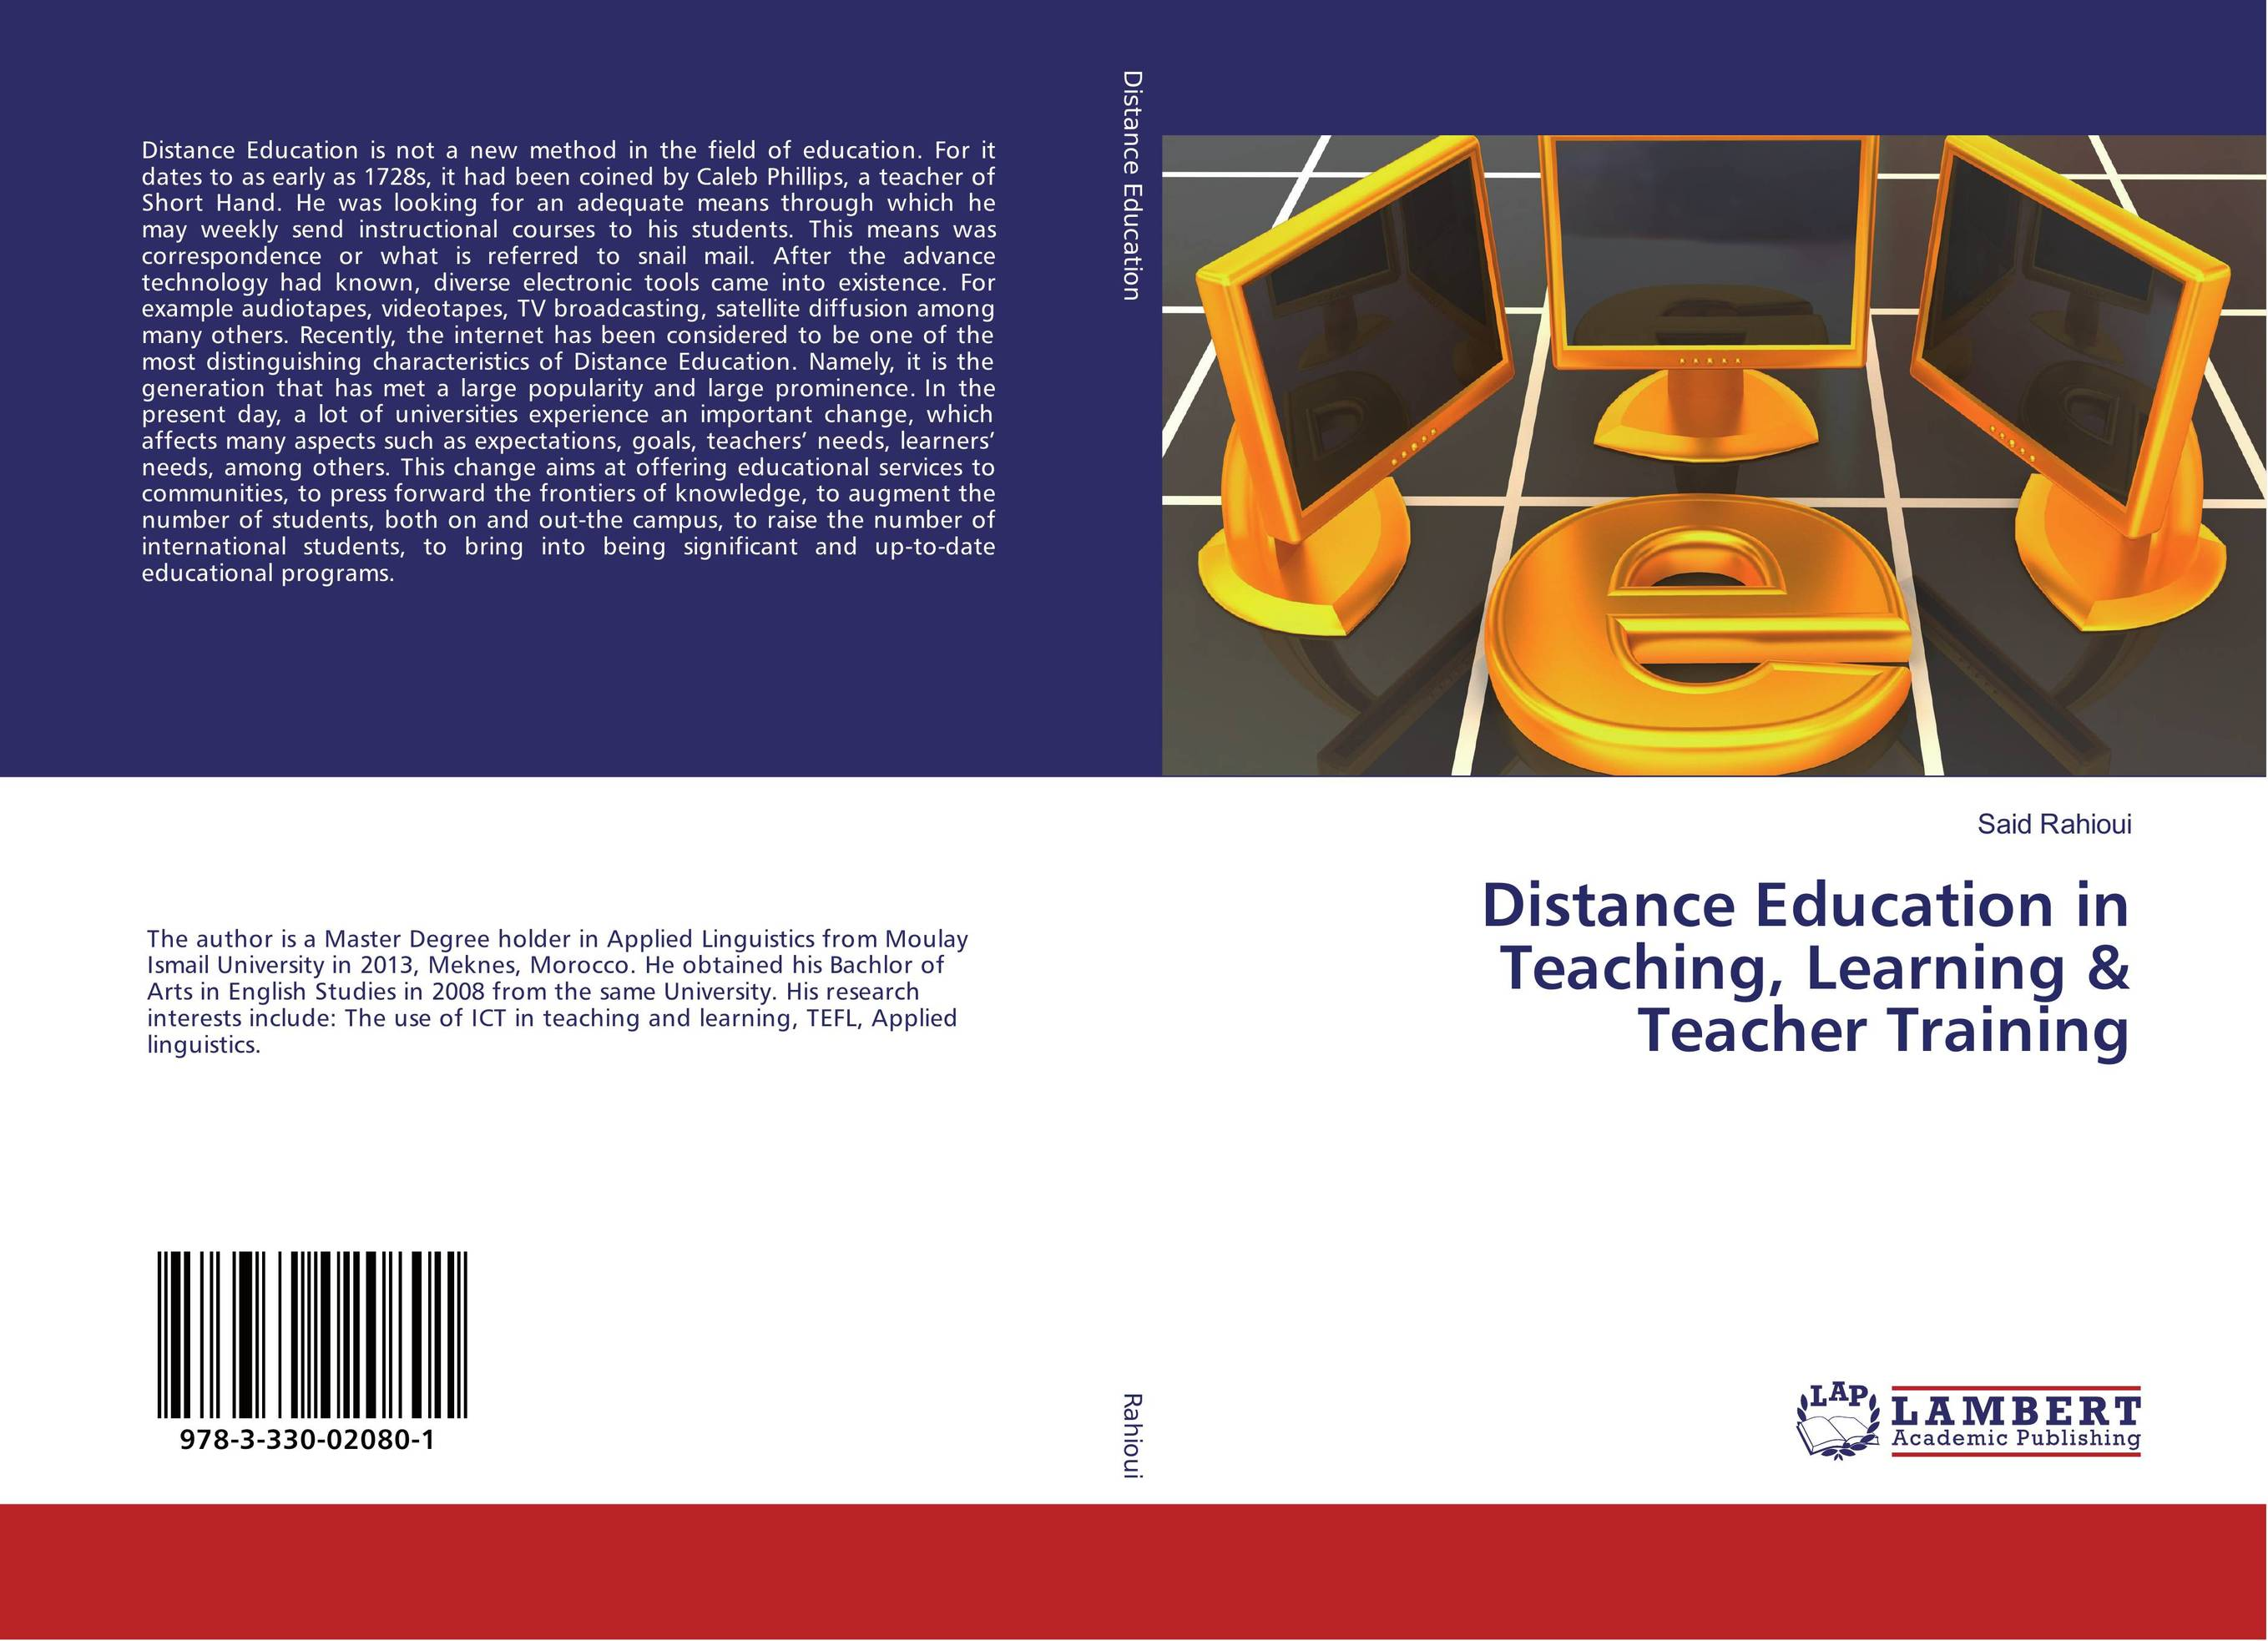 9783330020801 Distance Education in Teaching, Learning & Teacher Training Said